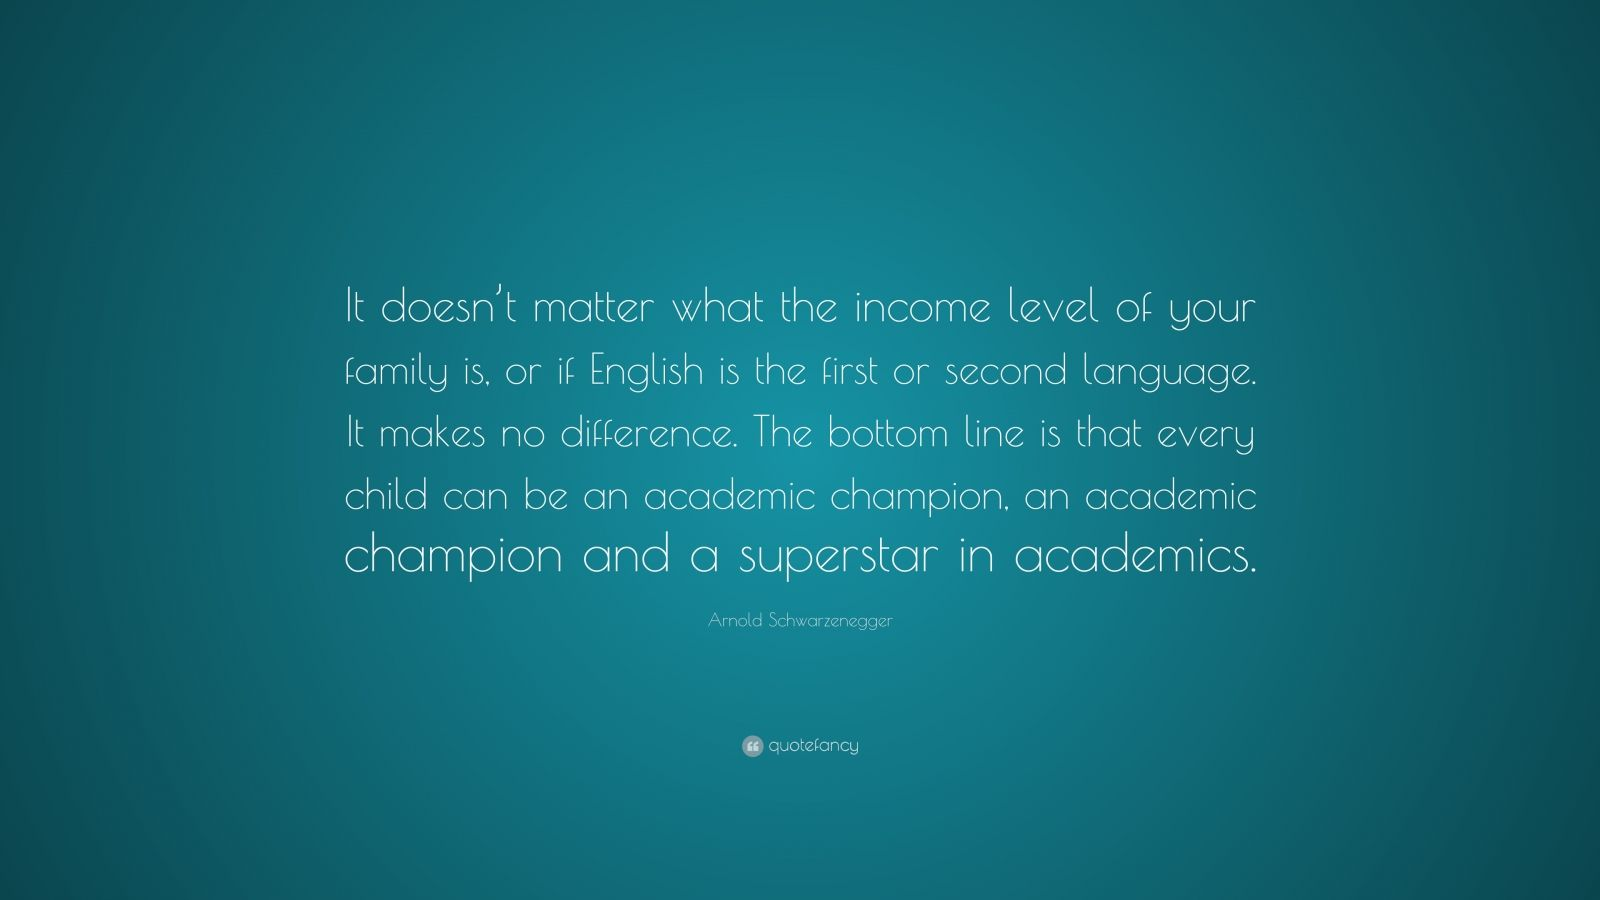 """Arnold Schwarzenegger Quote: """"It doesn't matter what the income level of your family is, or if English is the first or second language. It makes no difference. The bottom line is that every child can be an academic champion, an academic champion and a superstar in academics."""""""